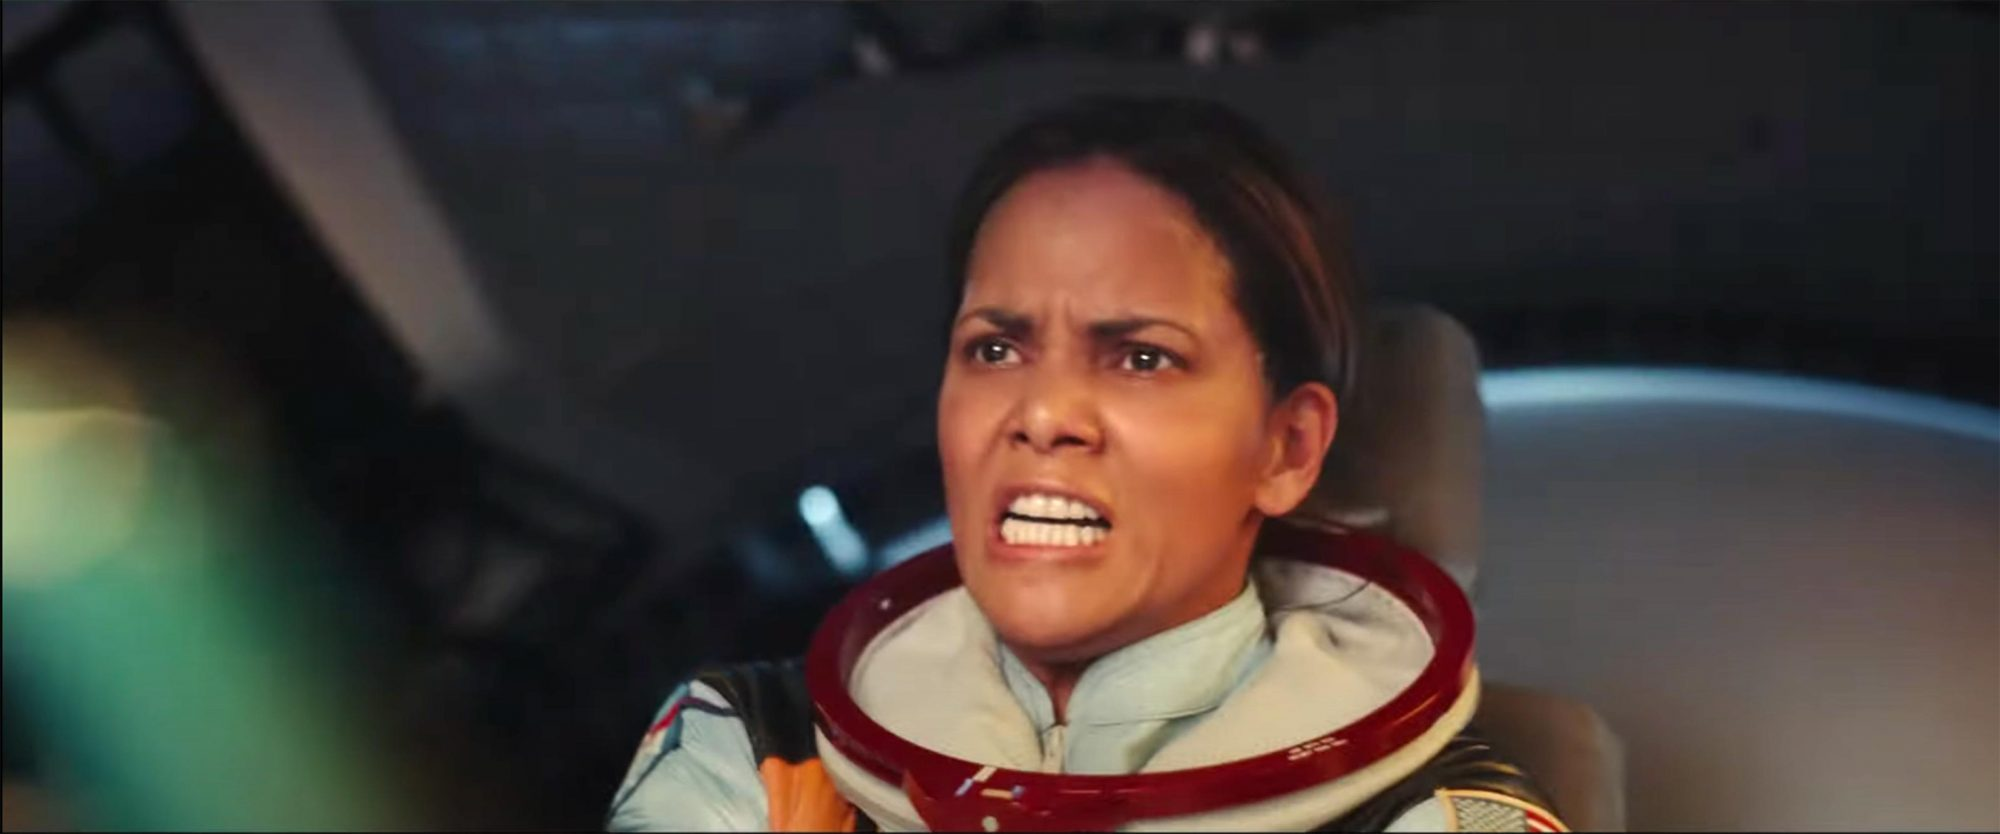 Moonfall (2022 Movie) Announcement Teaser - Halle Berry